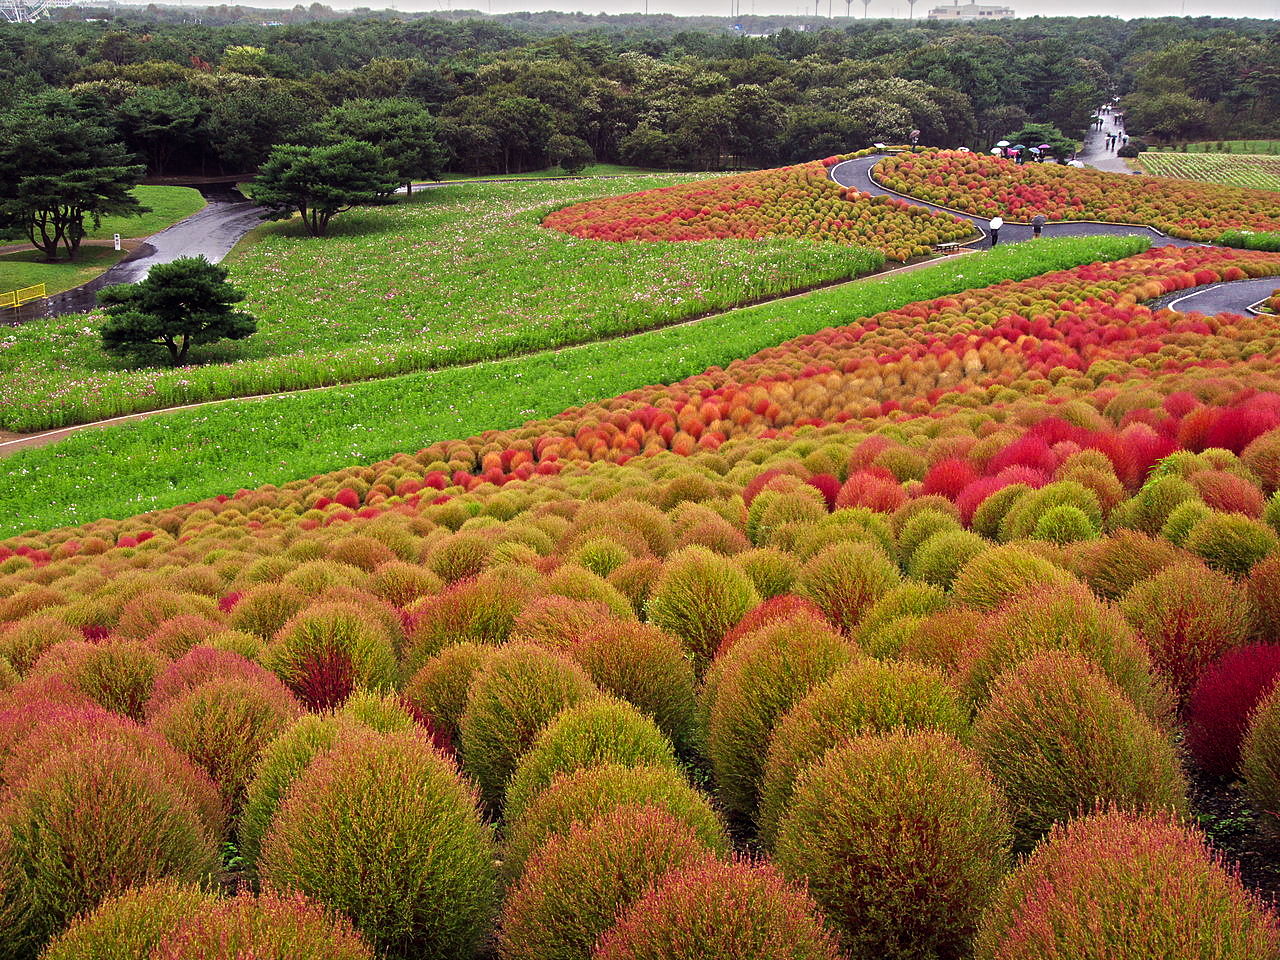 These Bassia plants change colors according to the season.